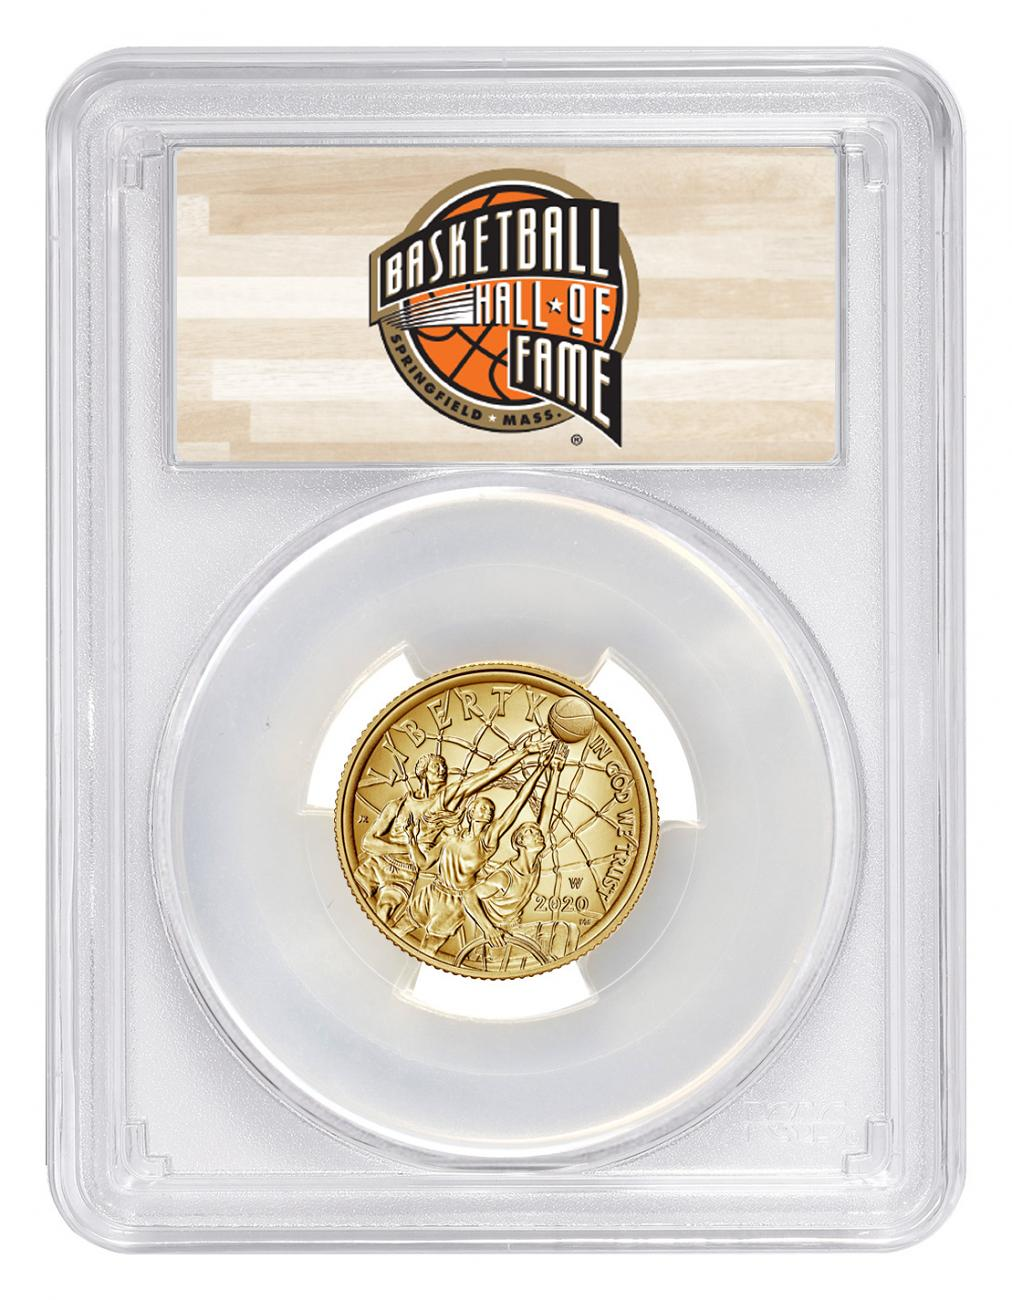 2020-W $5 Basketball Hall of Fame Gold Coin PCGS MS70 FS Hall of Fame Label